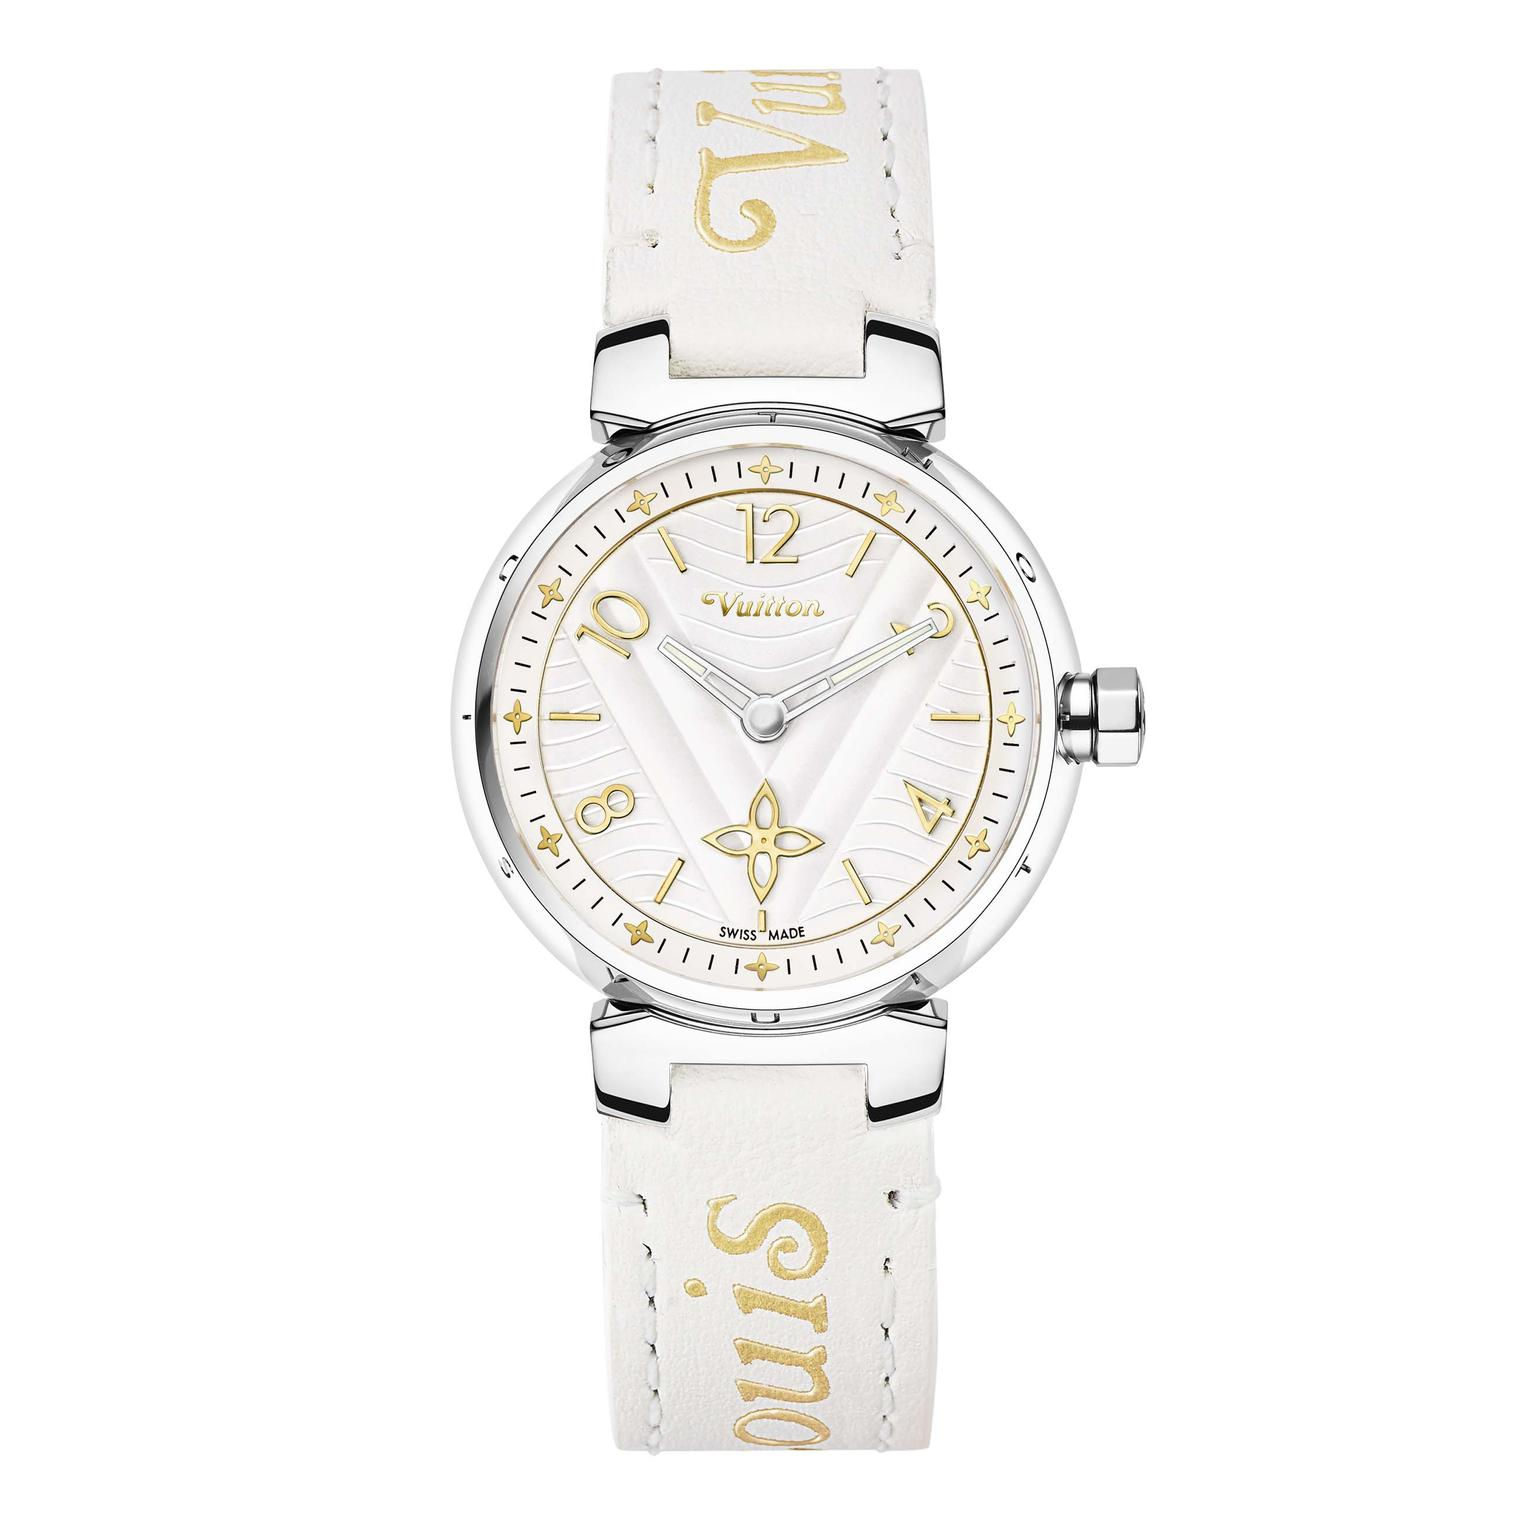 Louis Vuitton Tambour New Wave 28 mm watch